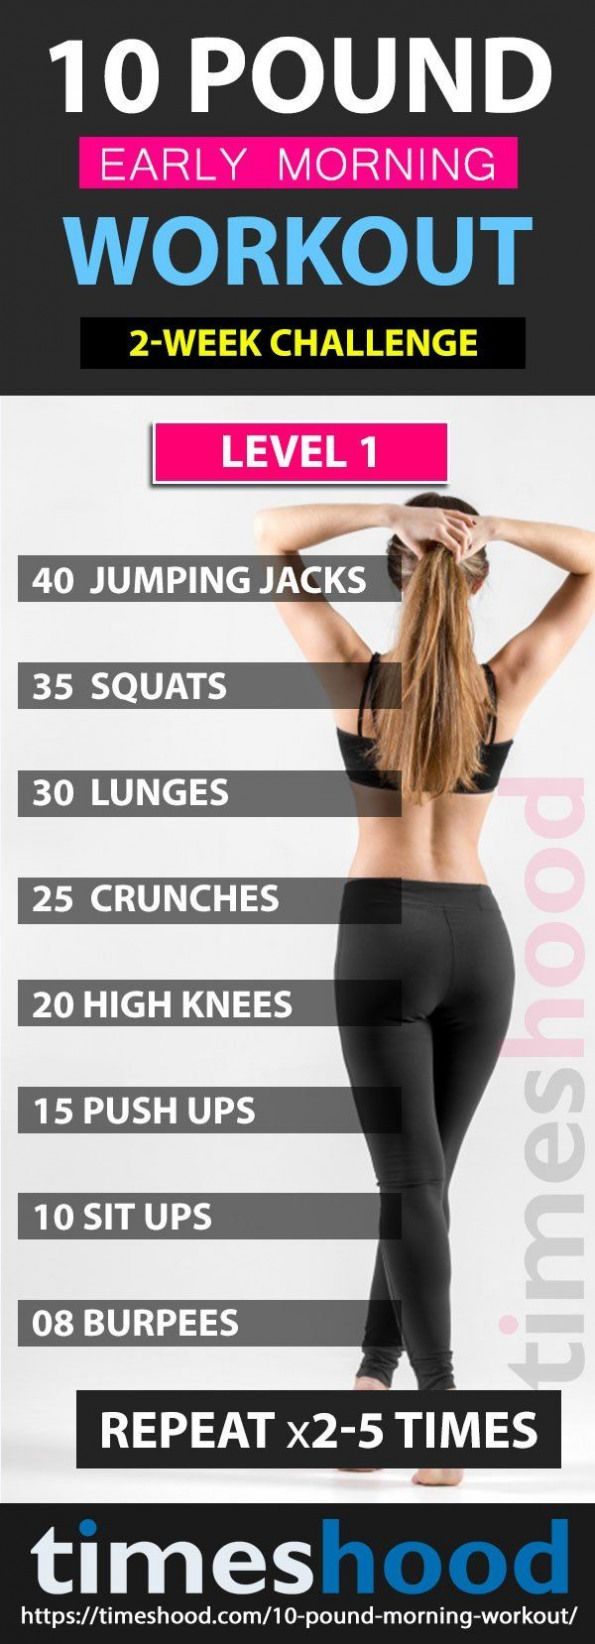 Lose 10 pounds in 3 weeks with this early morning workout plan. Best plan for beginner and advanced to lose 10 pounds in 2 weeks fast. Best weight loss tips for women. Fat burning workouts for overweight women. 10 pound workouts plan. Lose 10 pound mornin – Fitness